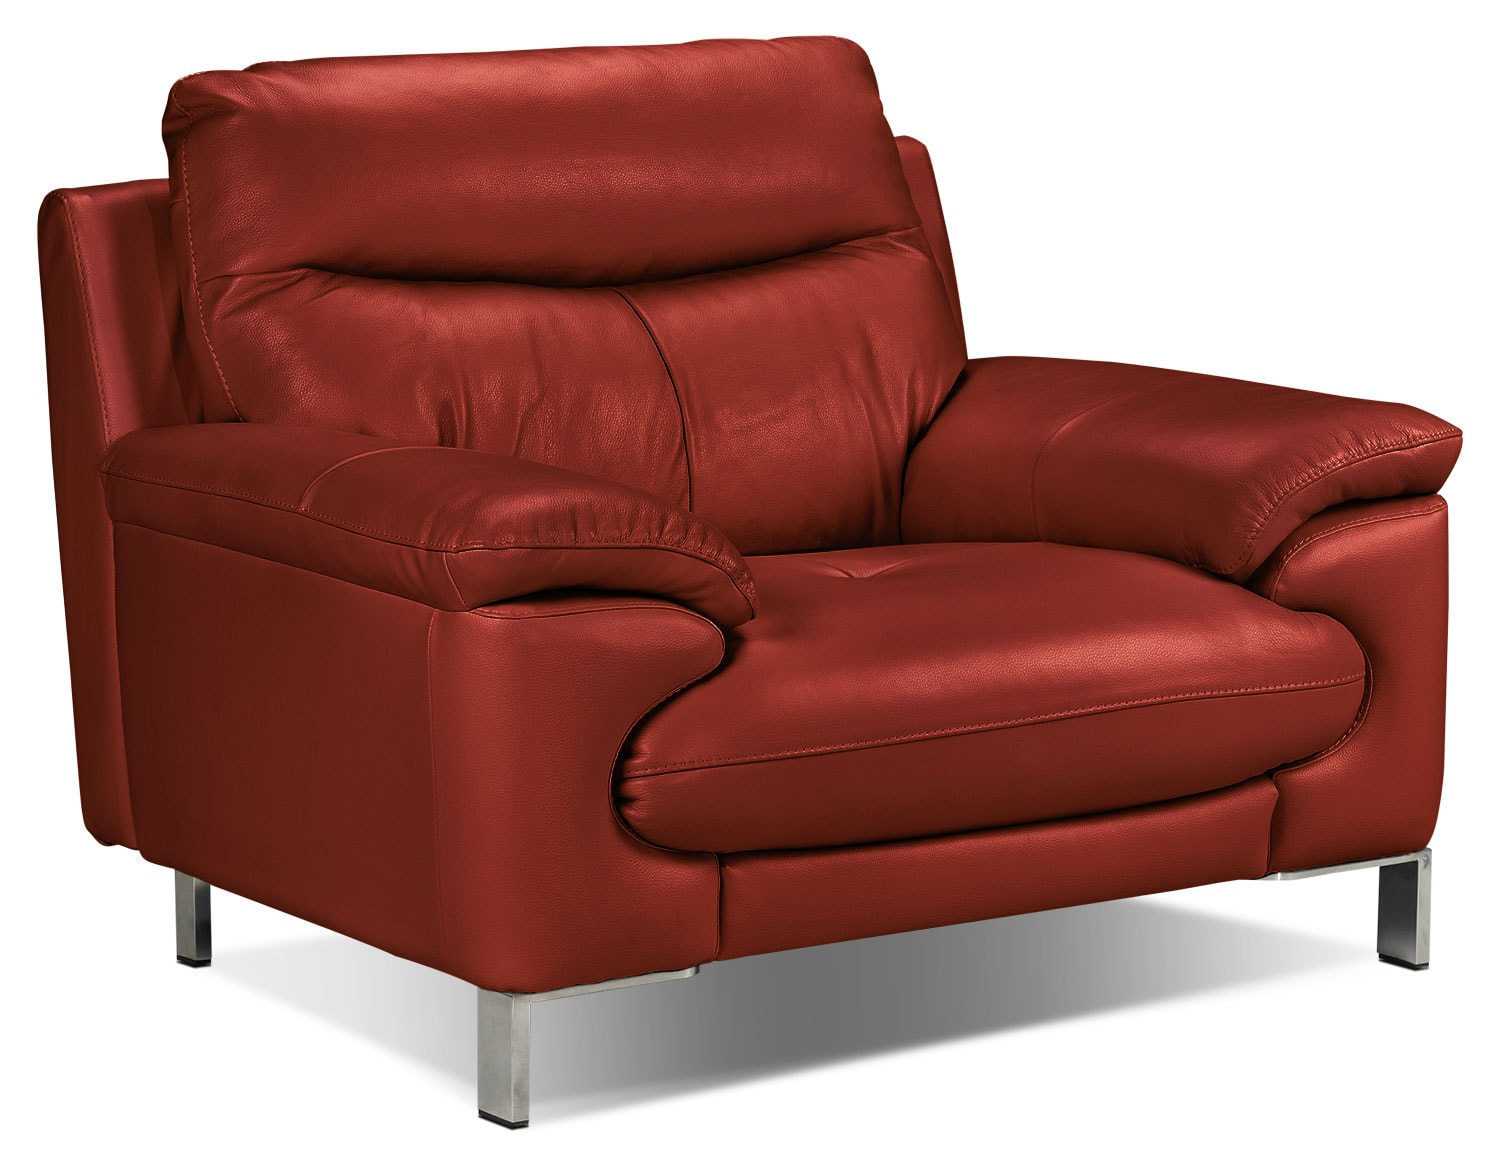 Living Room Furniture - Anika Chair - Red